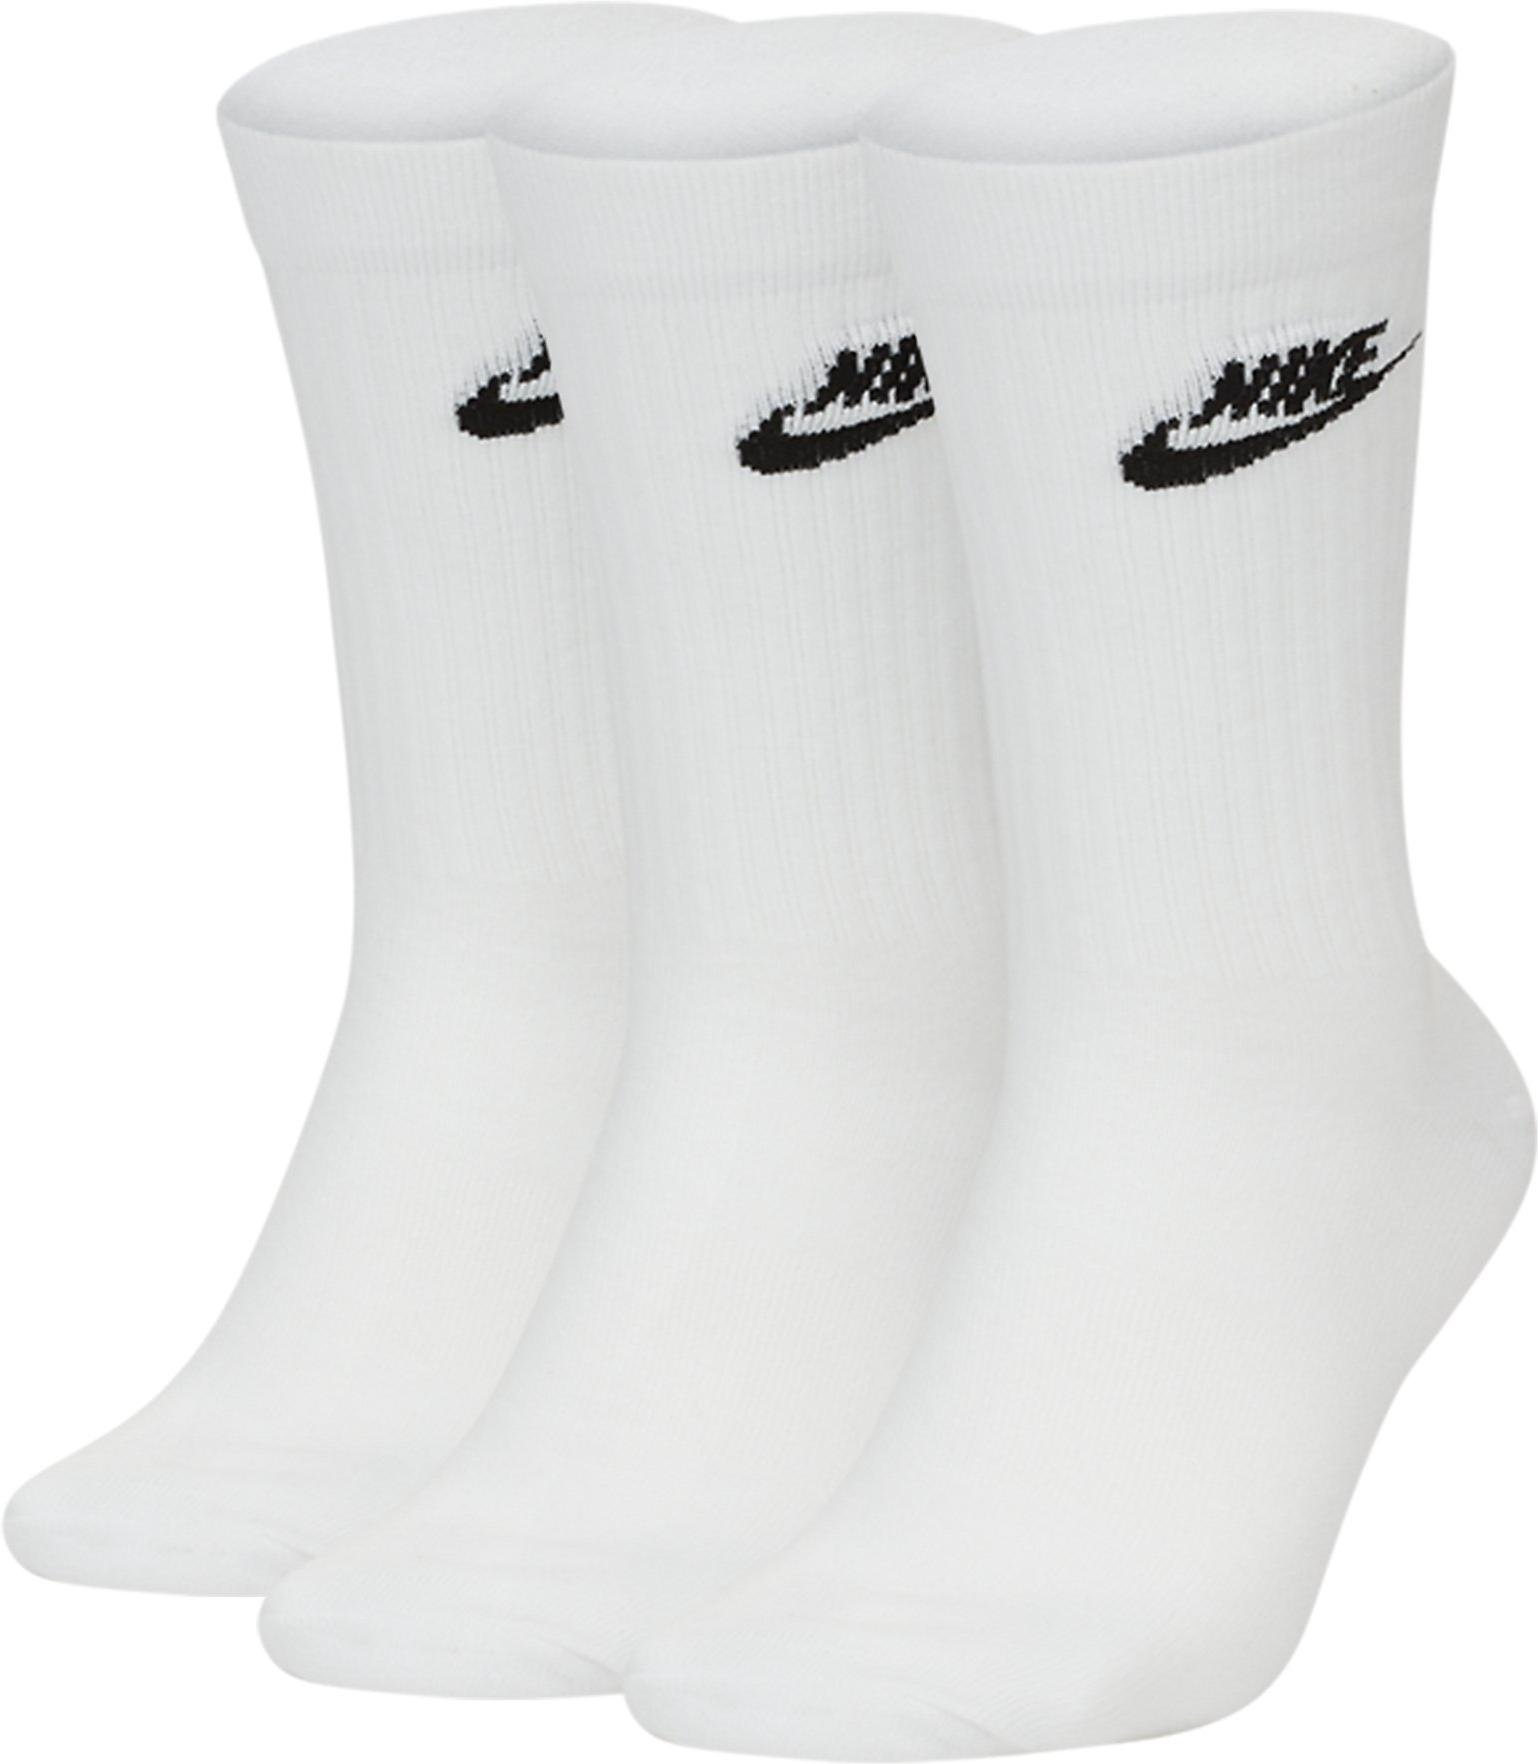 Socks Nike U NK NSW EVRY ESSENTIAL CREW